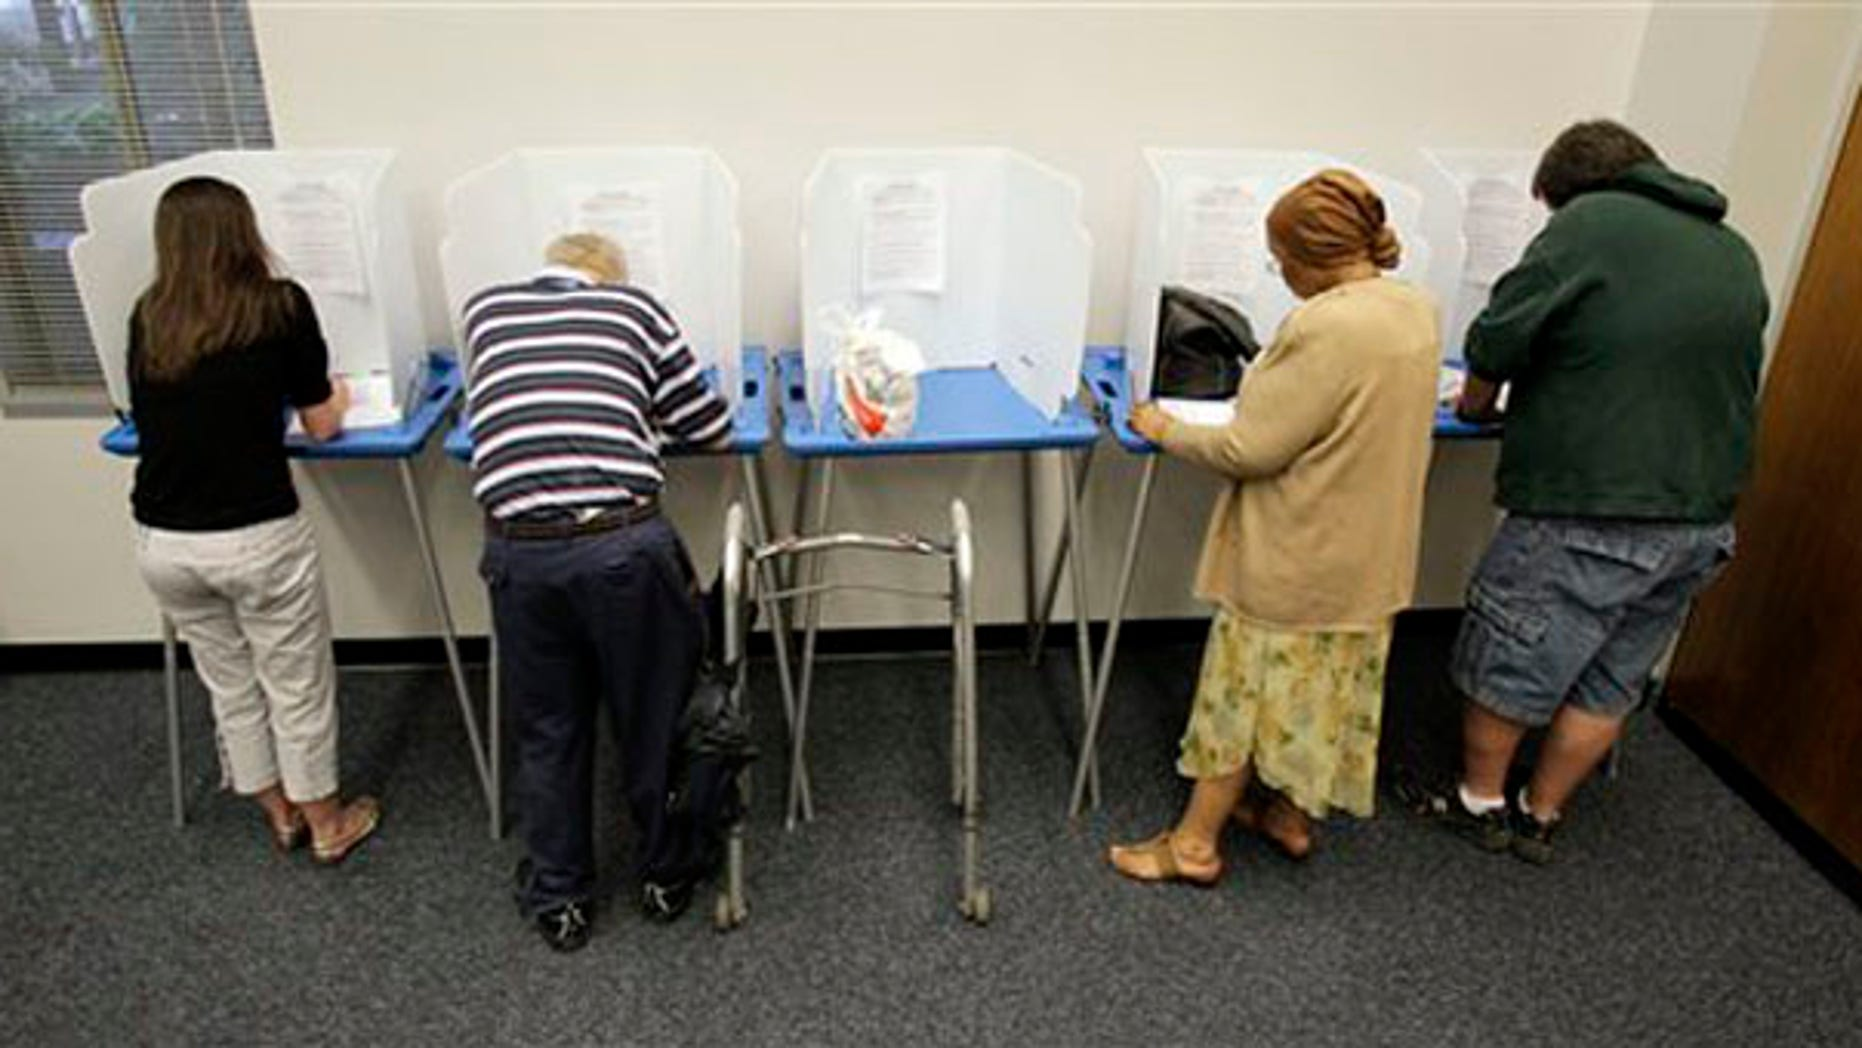 Voters cast their ballots during early voting for the Indiana primary election in Indianapolis May 3. (AP Photo)